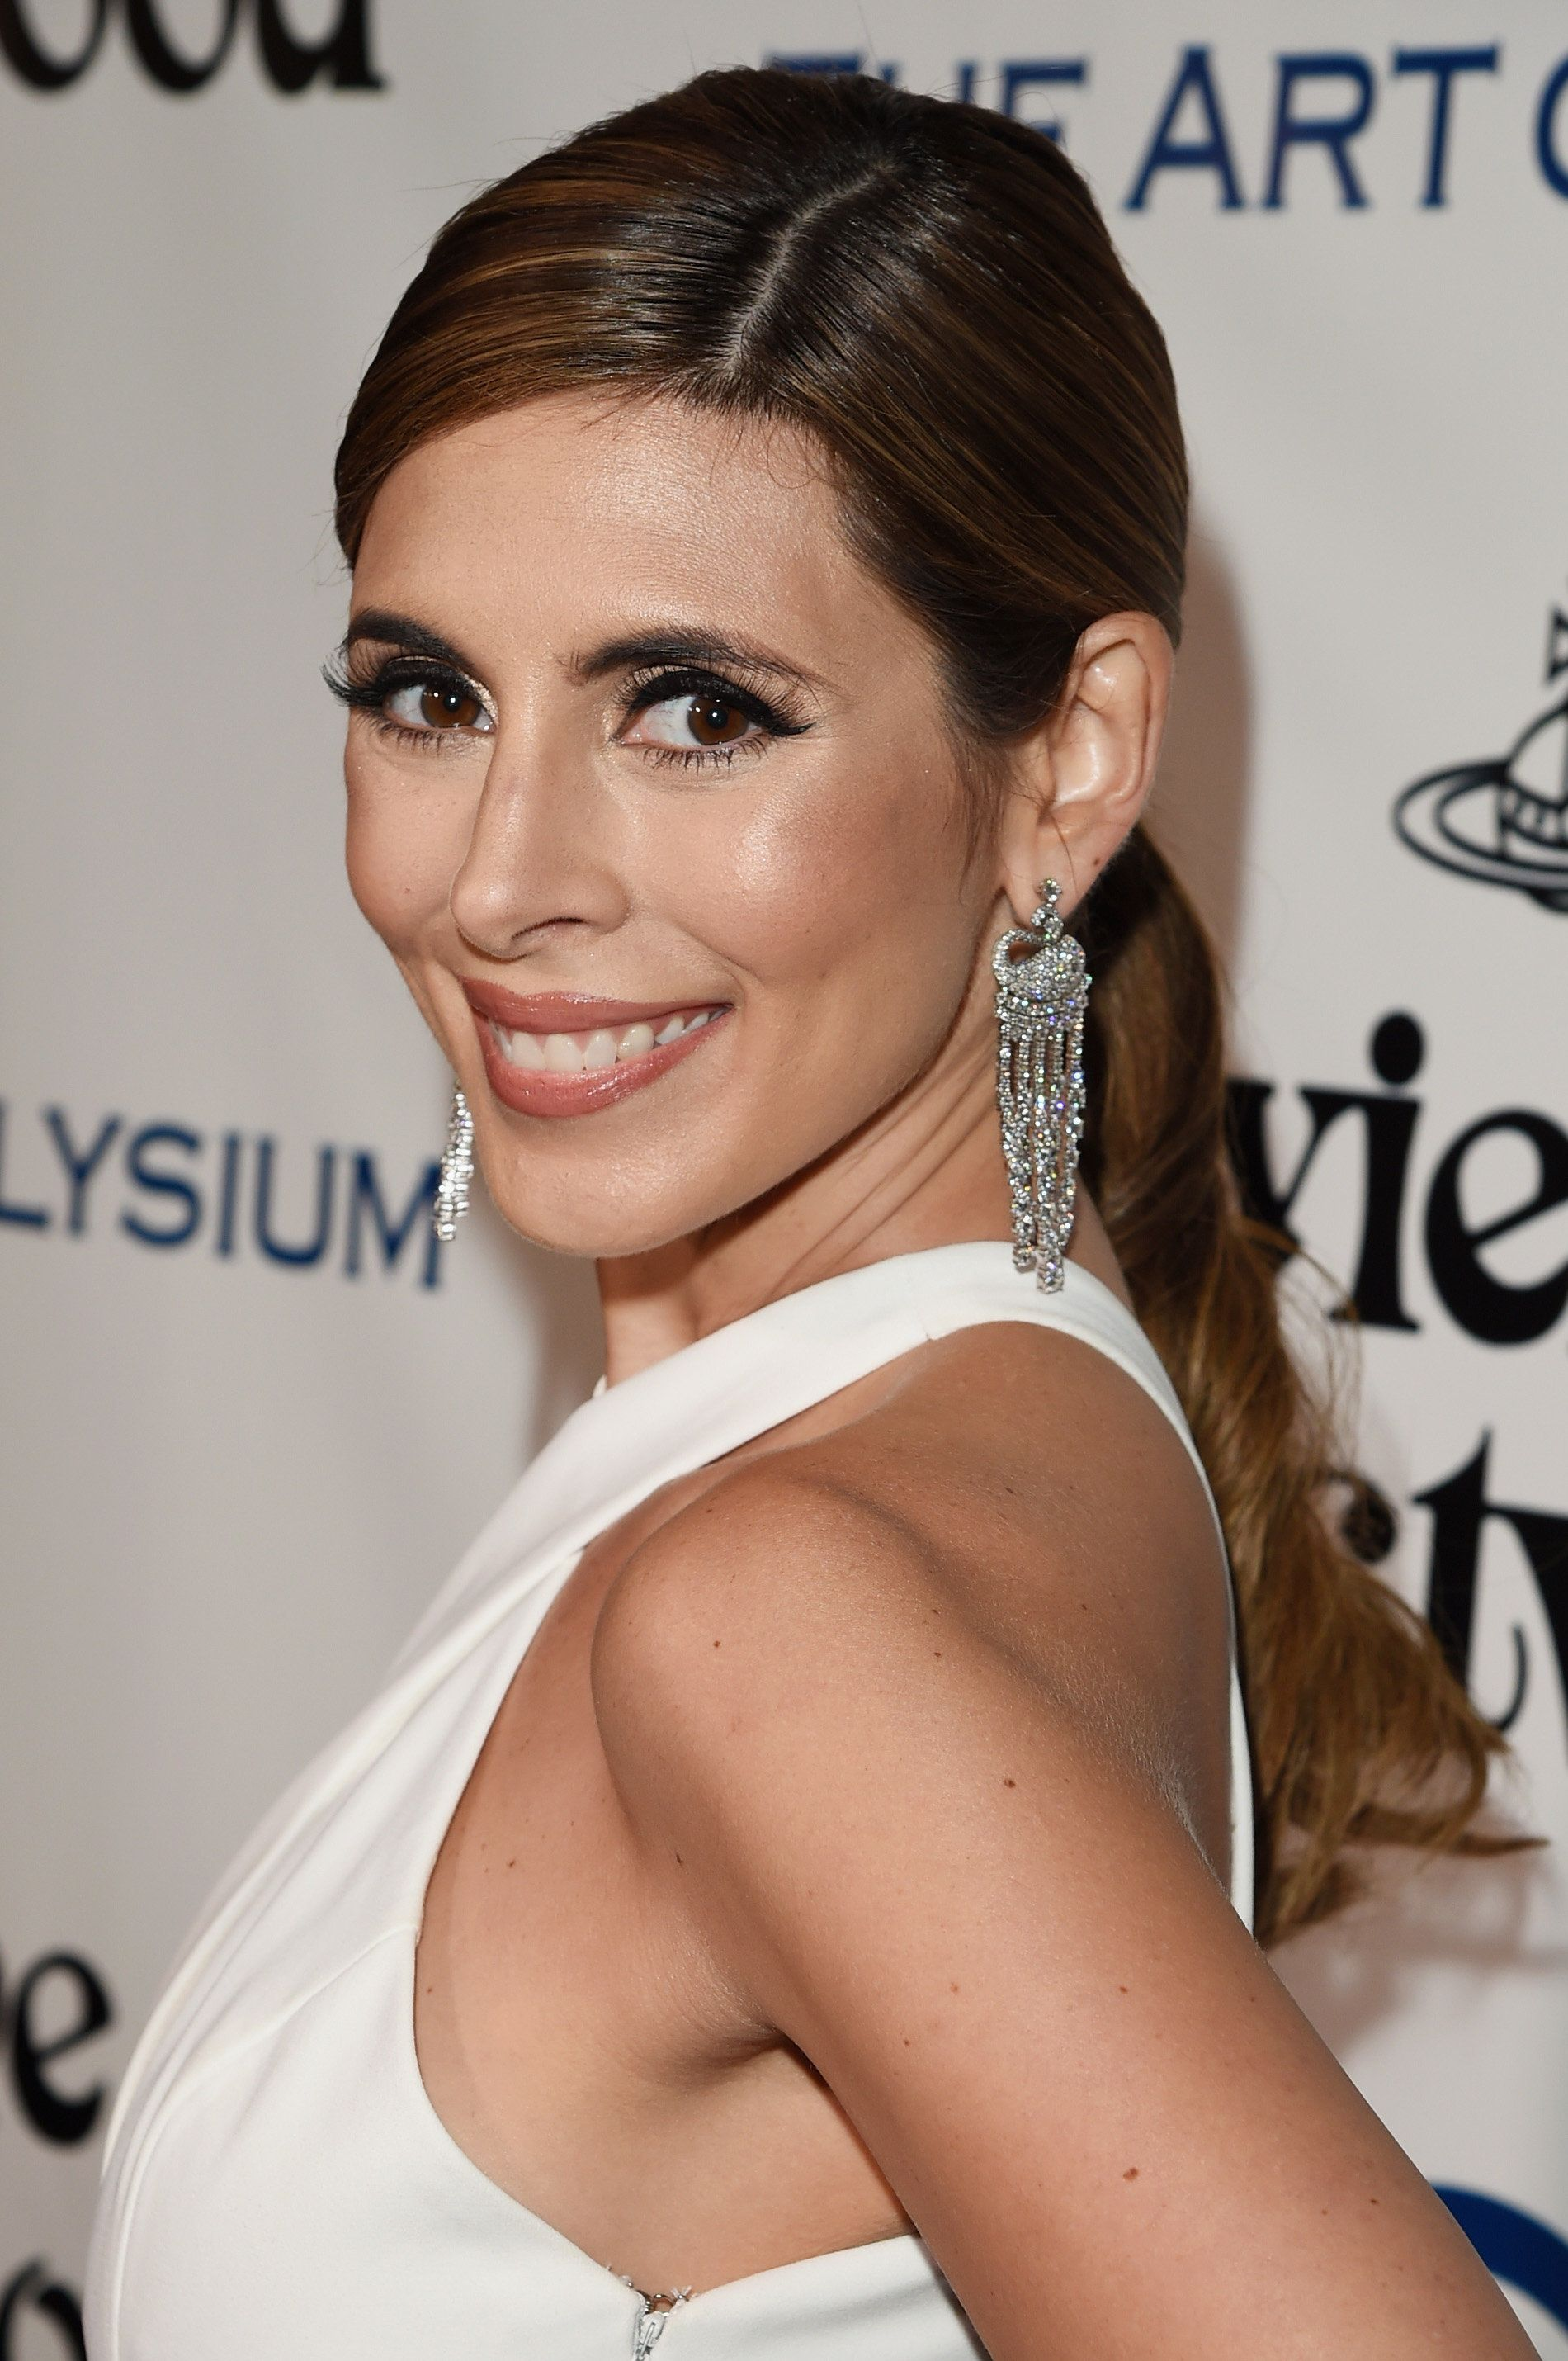 CULVER CITY, CA - JANUARY 09:  Actress Jamie-Lynn Sigler attends The Art of Elysium 2016 HEAVEN Gala presented by Vivienne Westwood & Andreas Kronthaler at 3LABS on January 9, 2016 in Culver City, California.  (Photo by Jason Merritt/Getty Images for Art of Elysium)